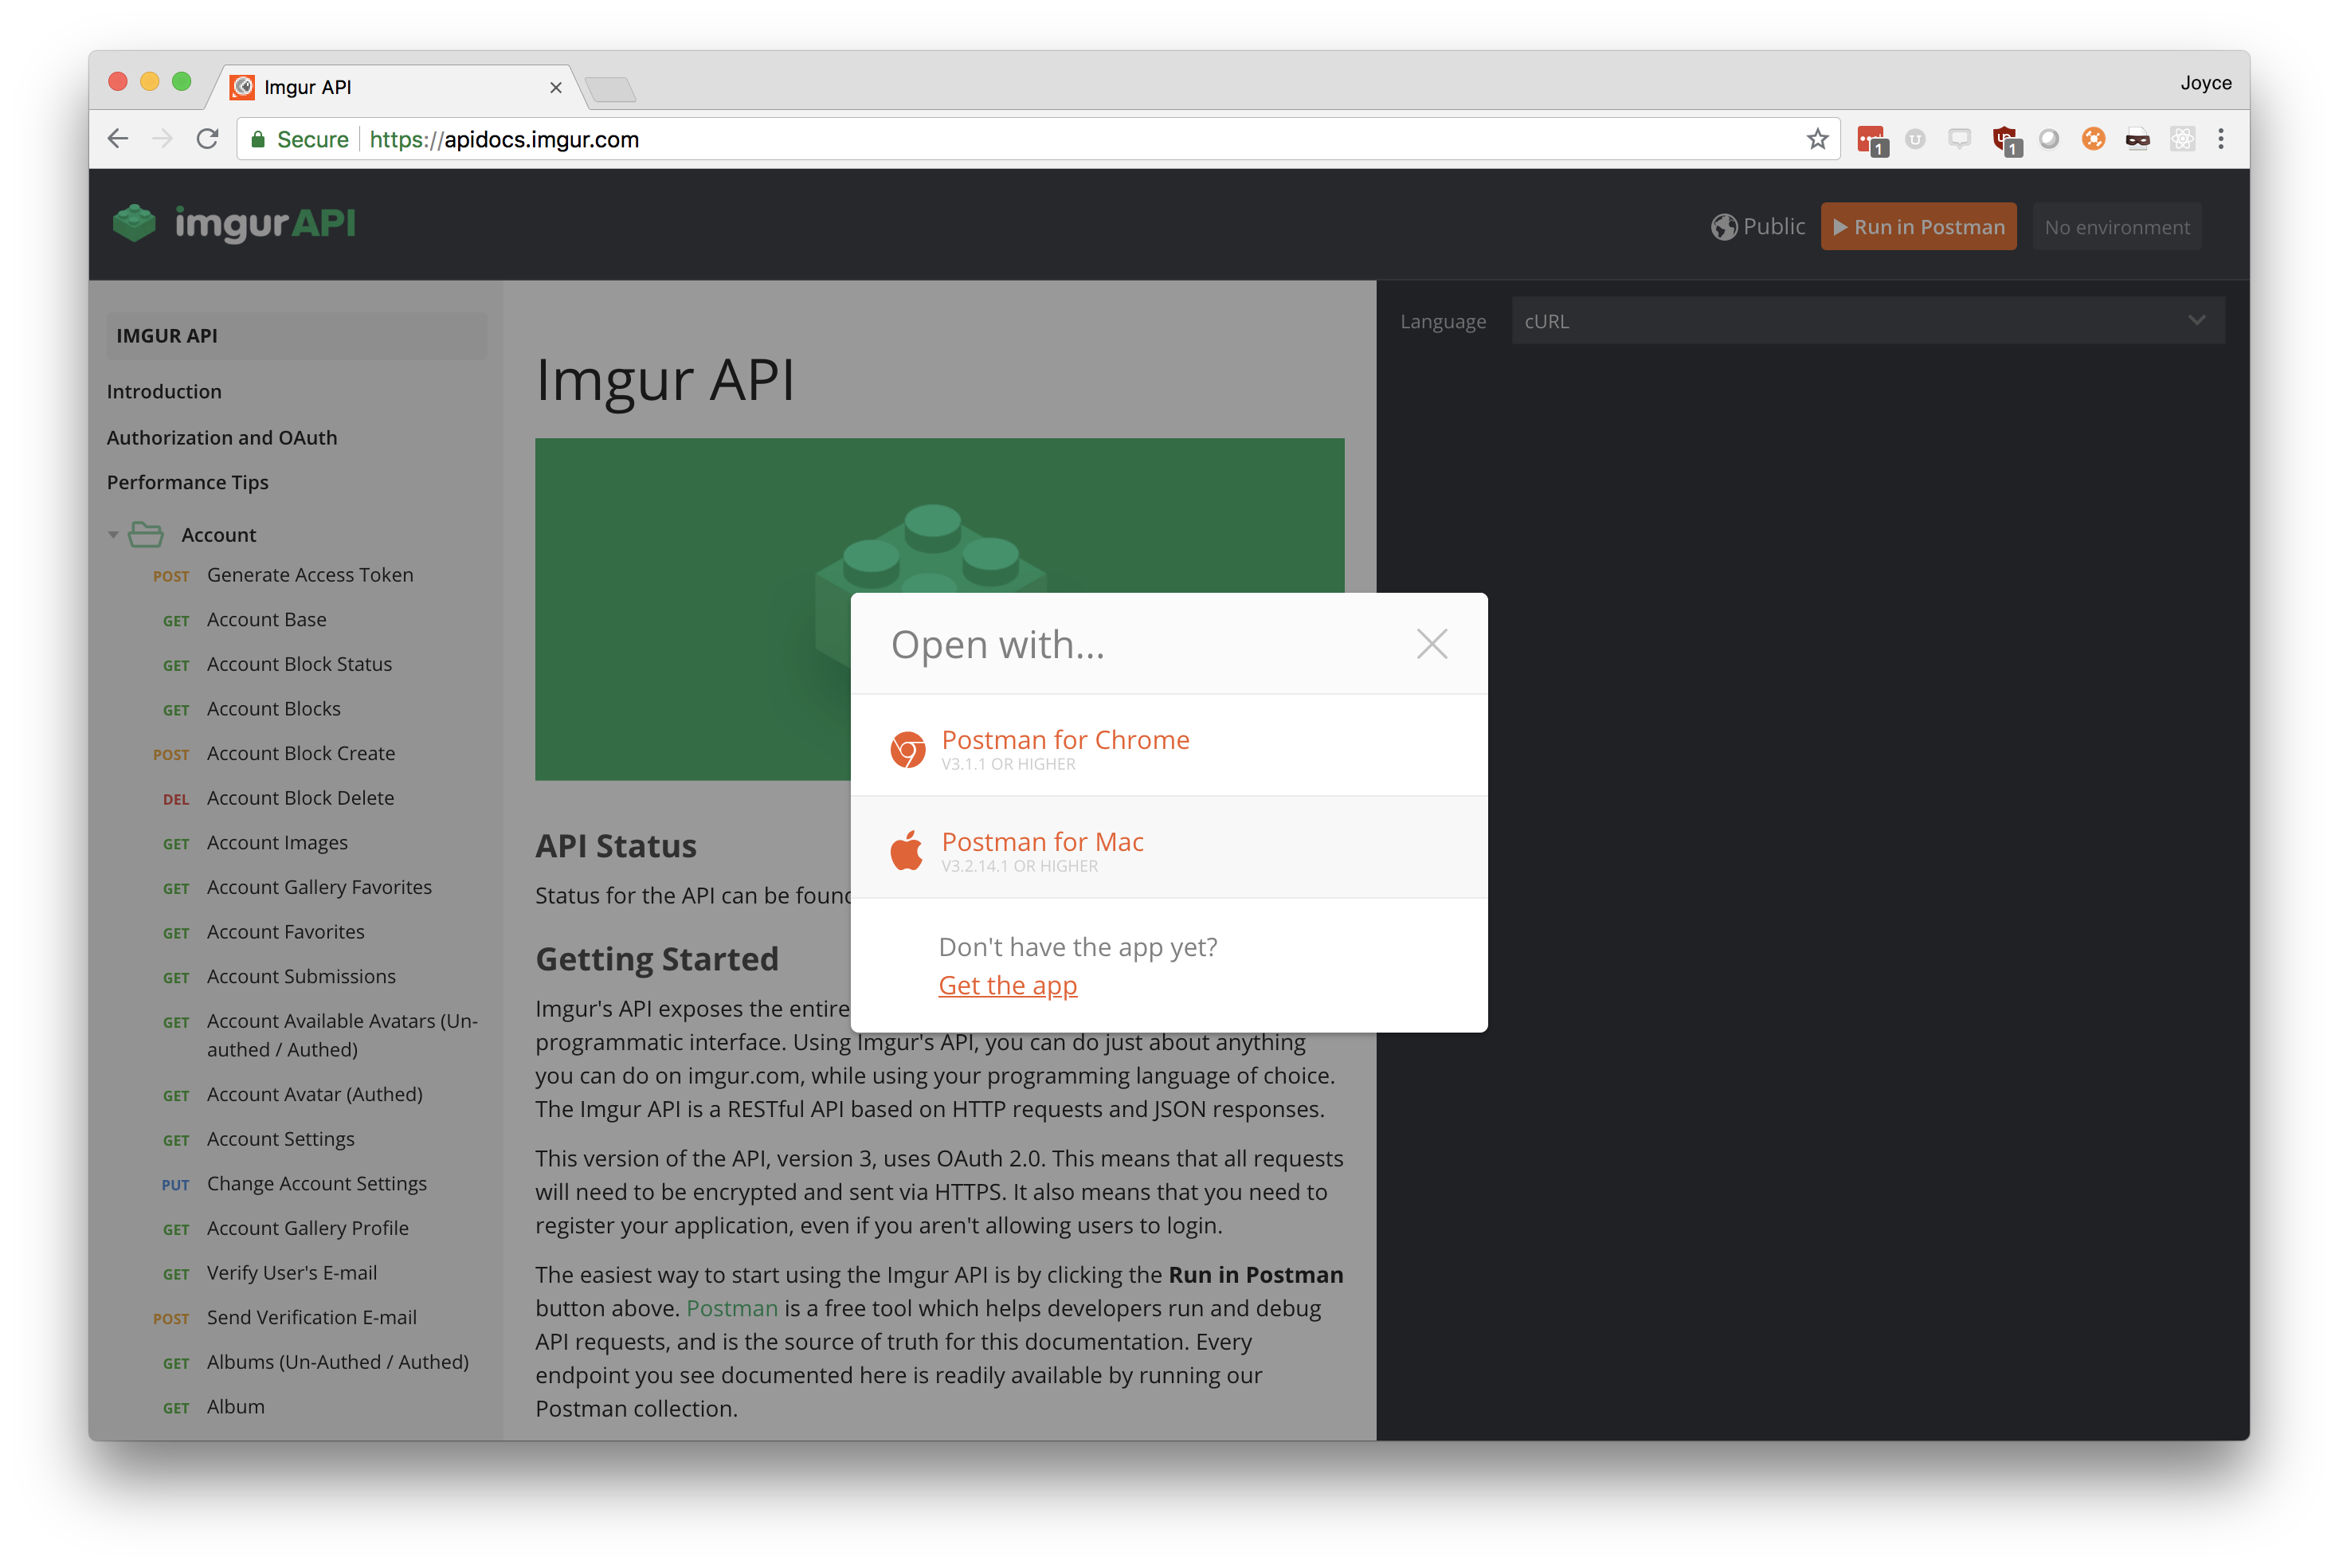 The Ultimate API Publisher's Guide - Better Practices - Medium